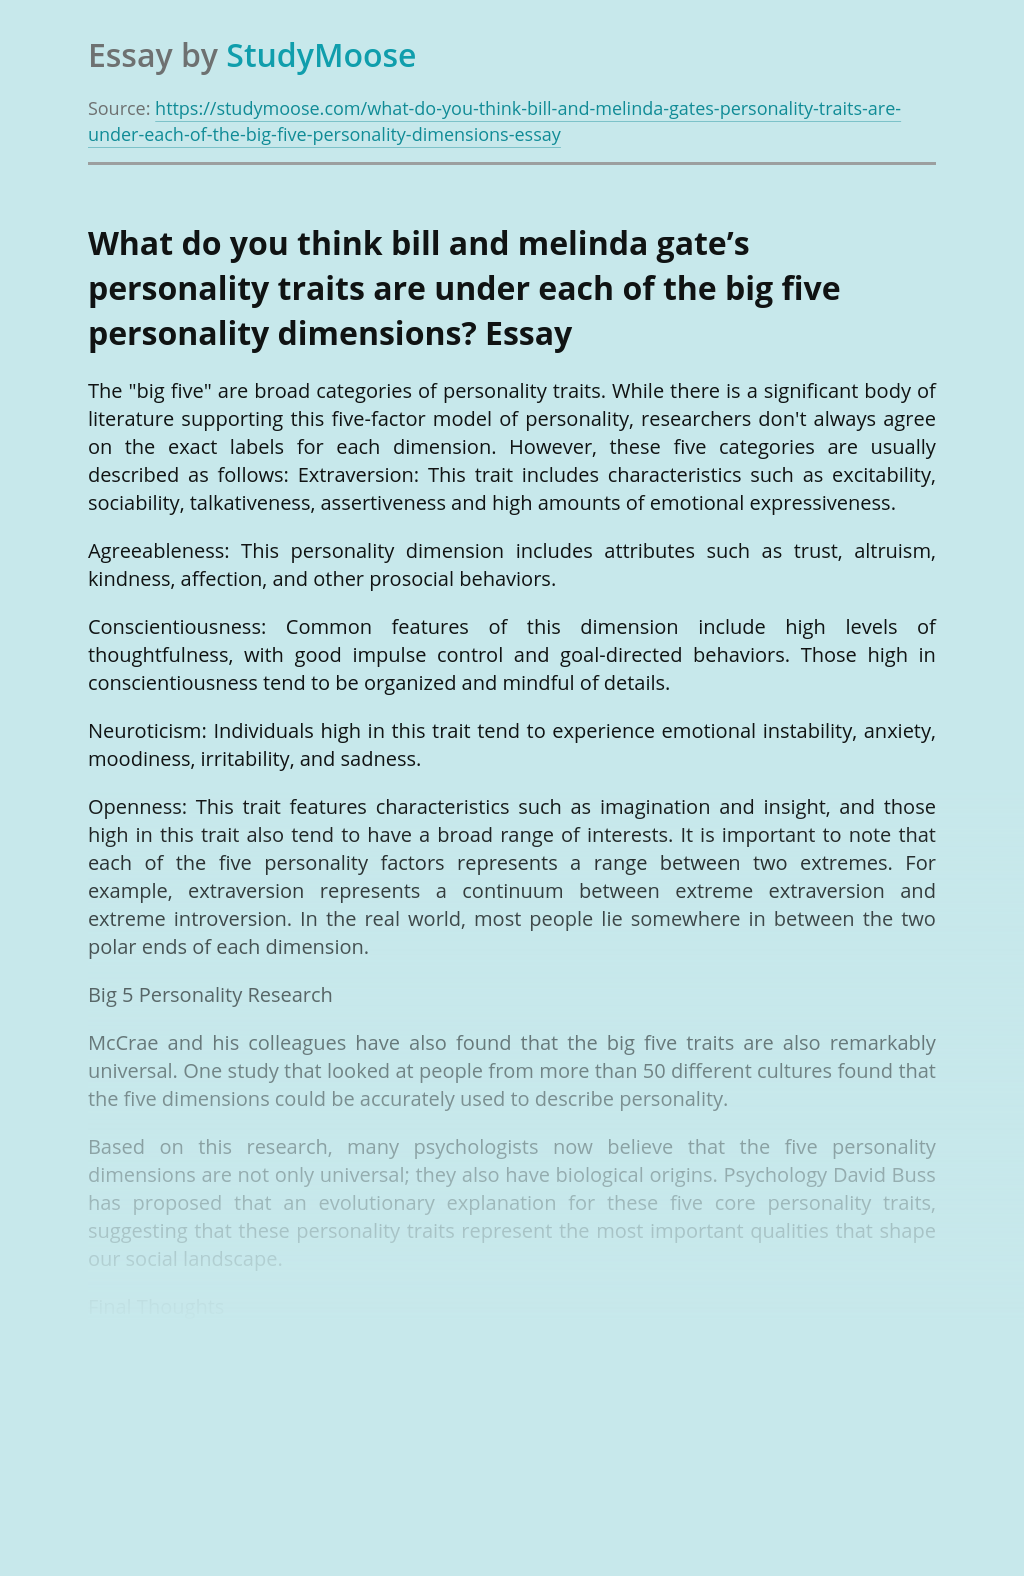 What do you think bill and melinda gate's personality traits are under each of the big five personality dimensions?